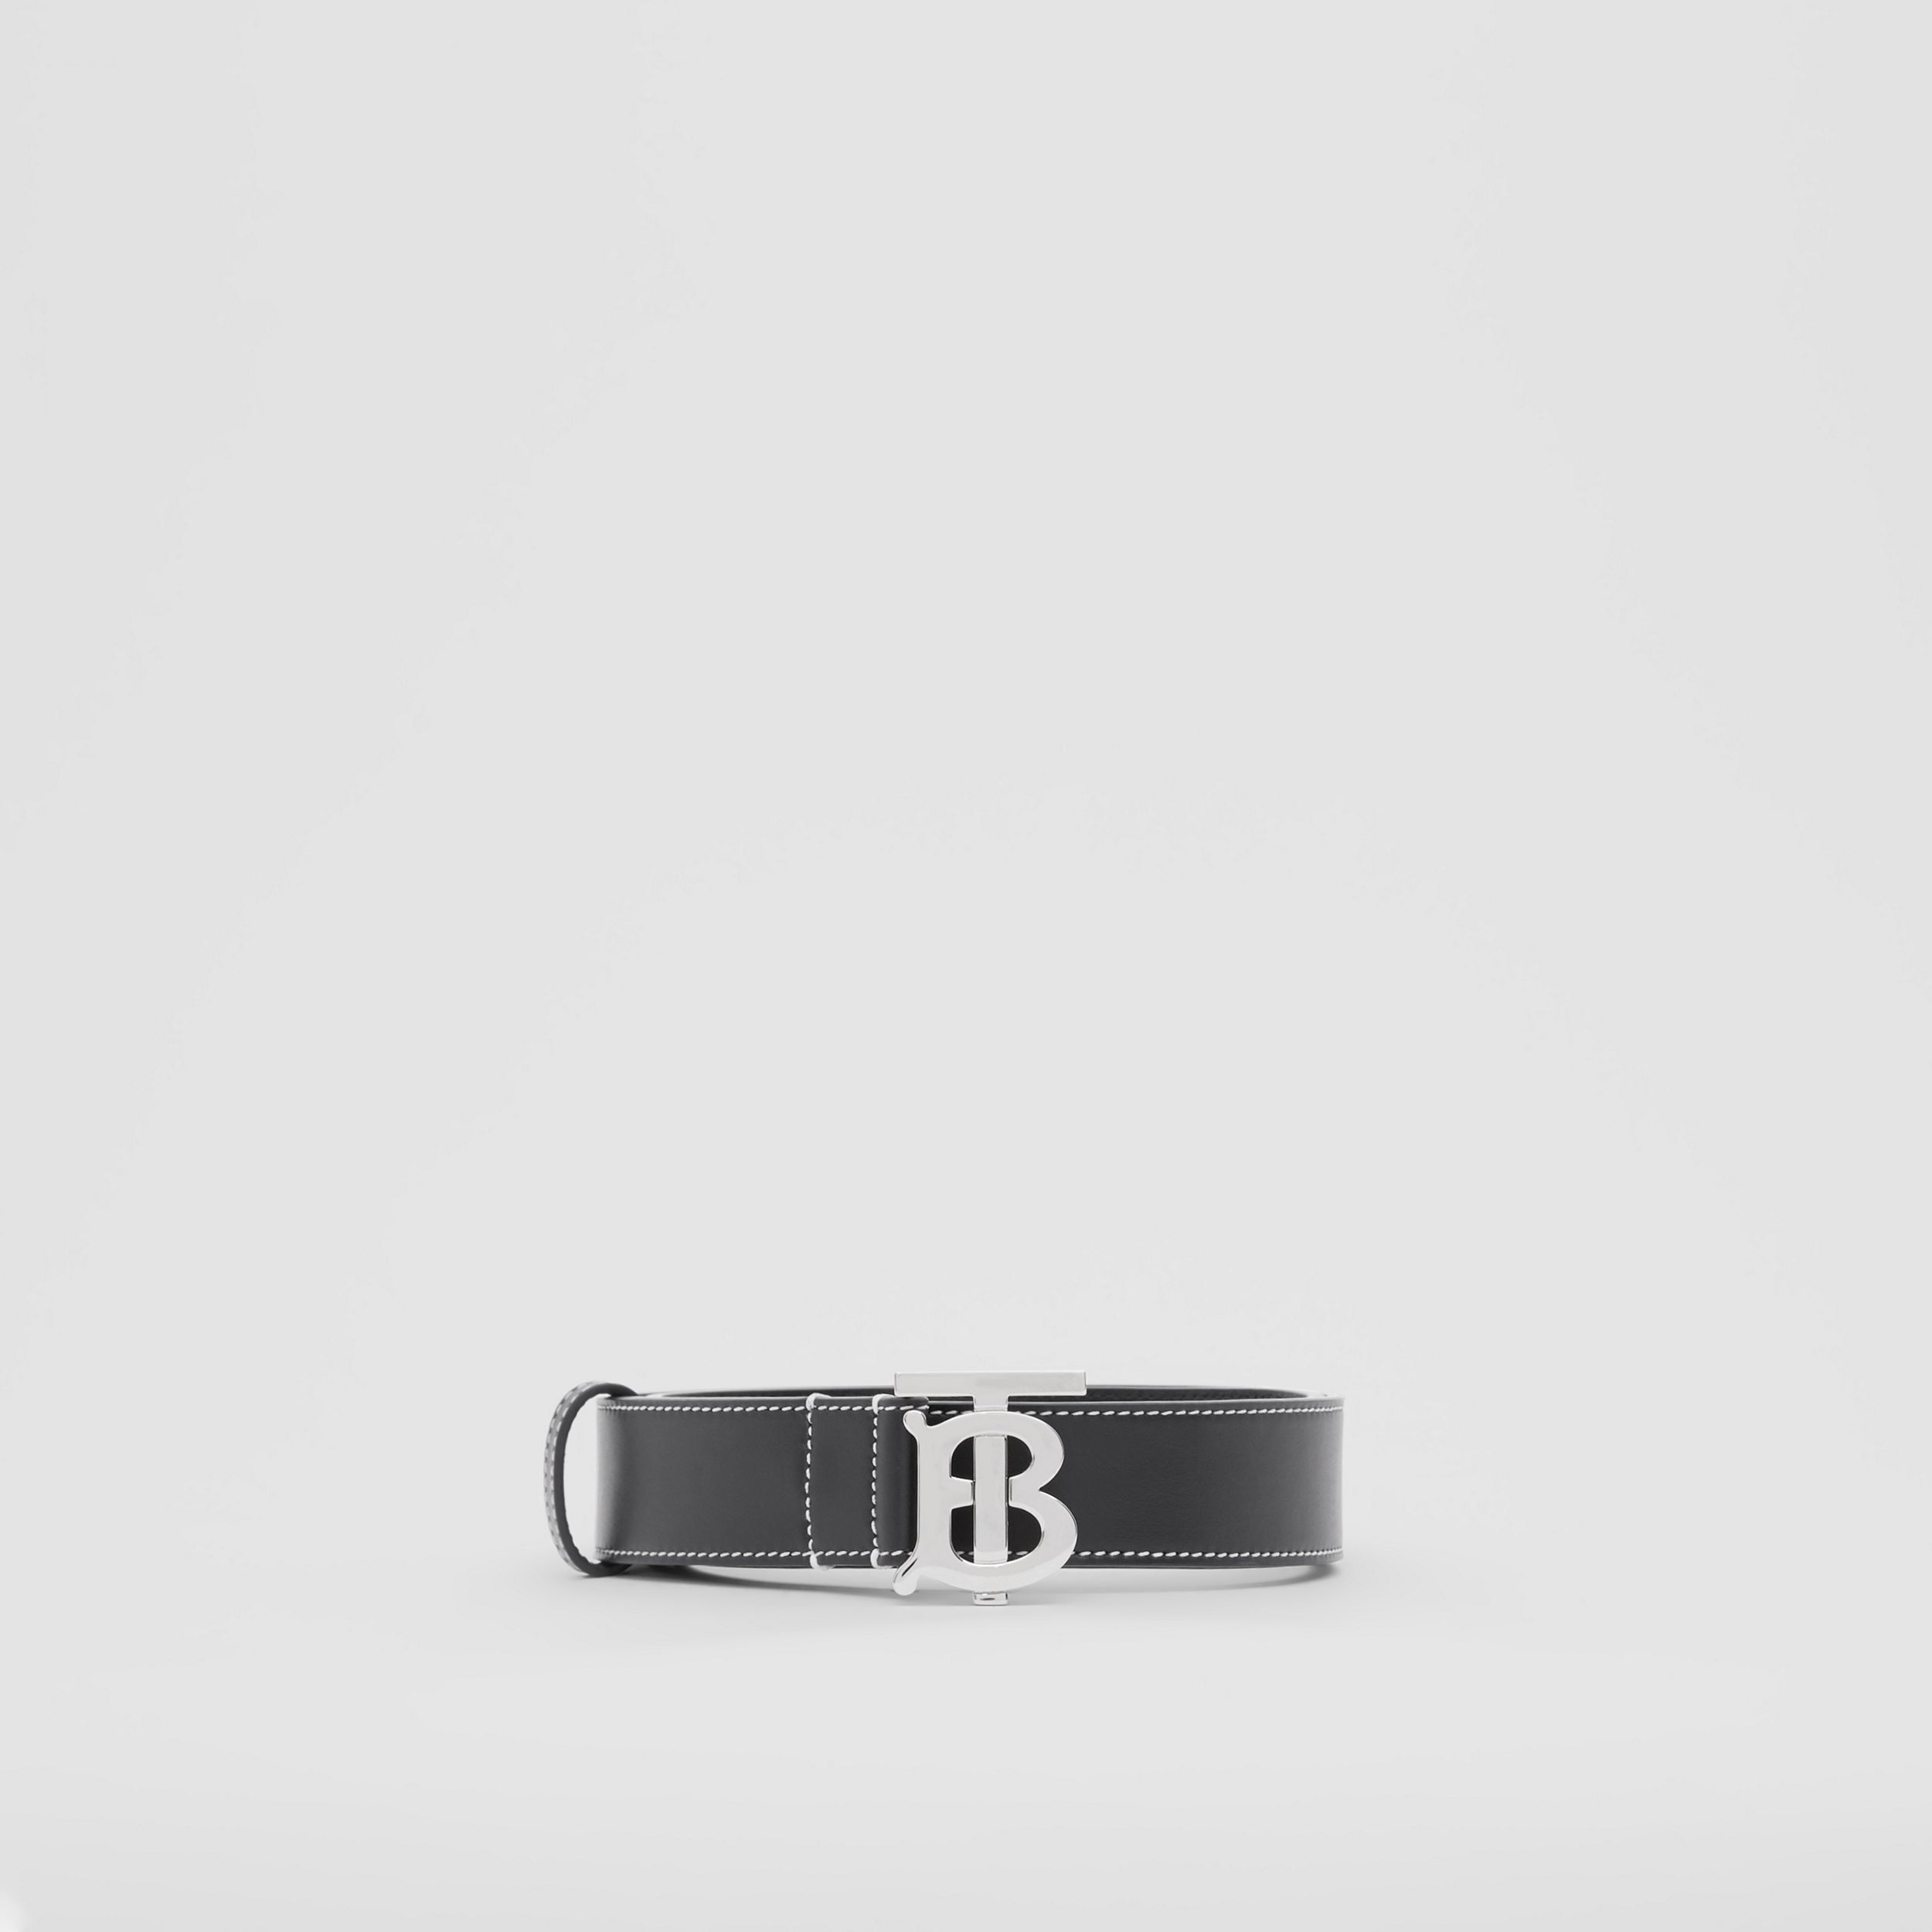 Monogram Motif Topstitched Leather Belt in Black - Men | Burberry United Kingdom - 4